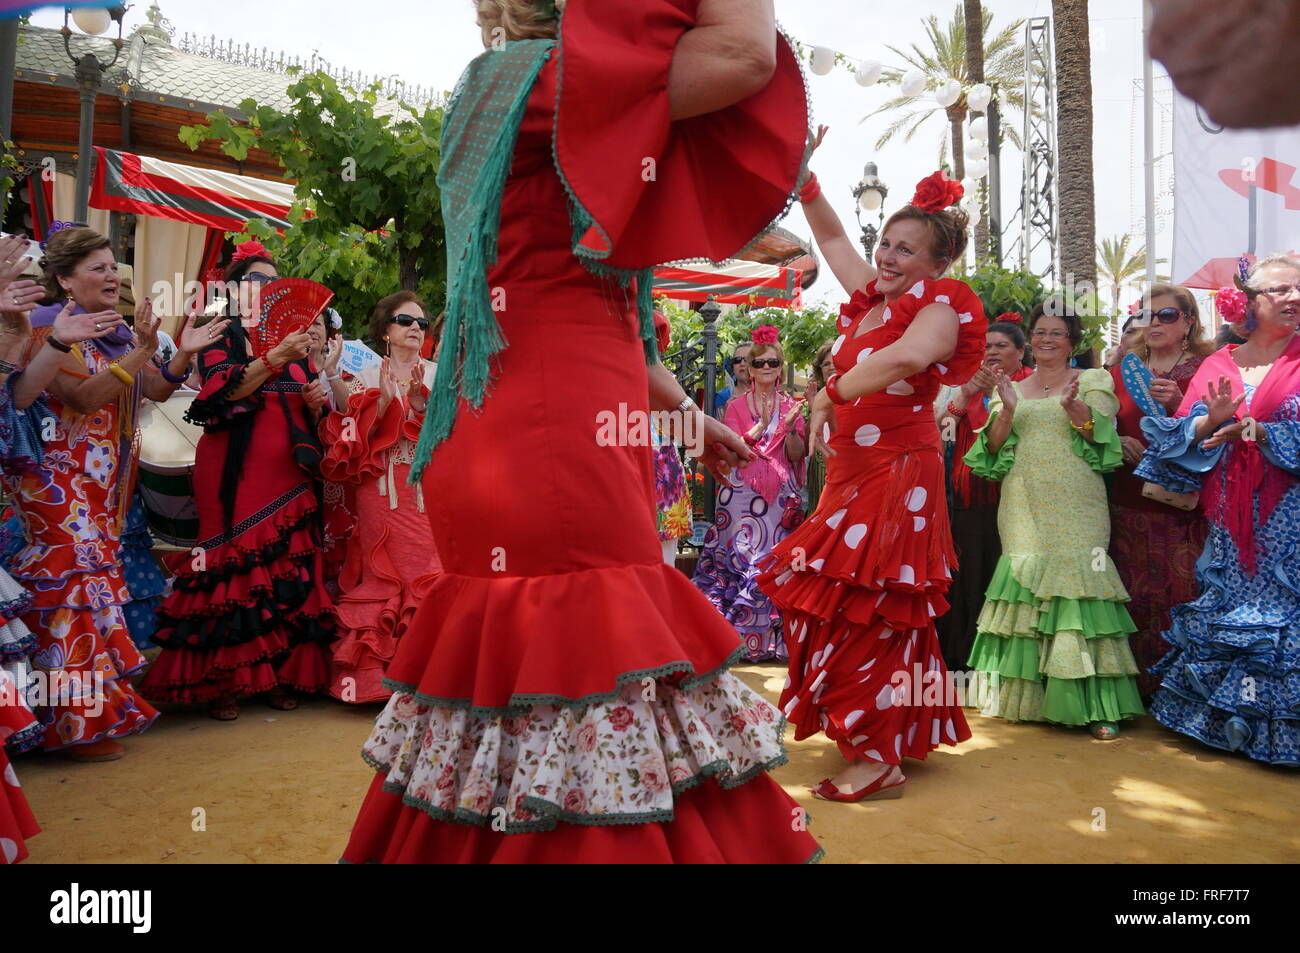 Andalucian Women during the Feria in Jerez -  08/05/2013  -  Spain / Andalusia / Jerez de la Frontera  -  Women - Stock Image